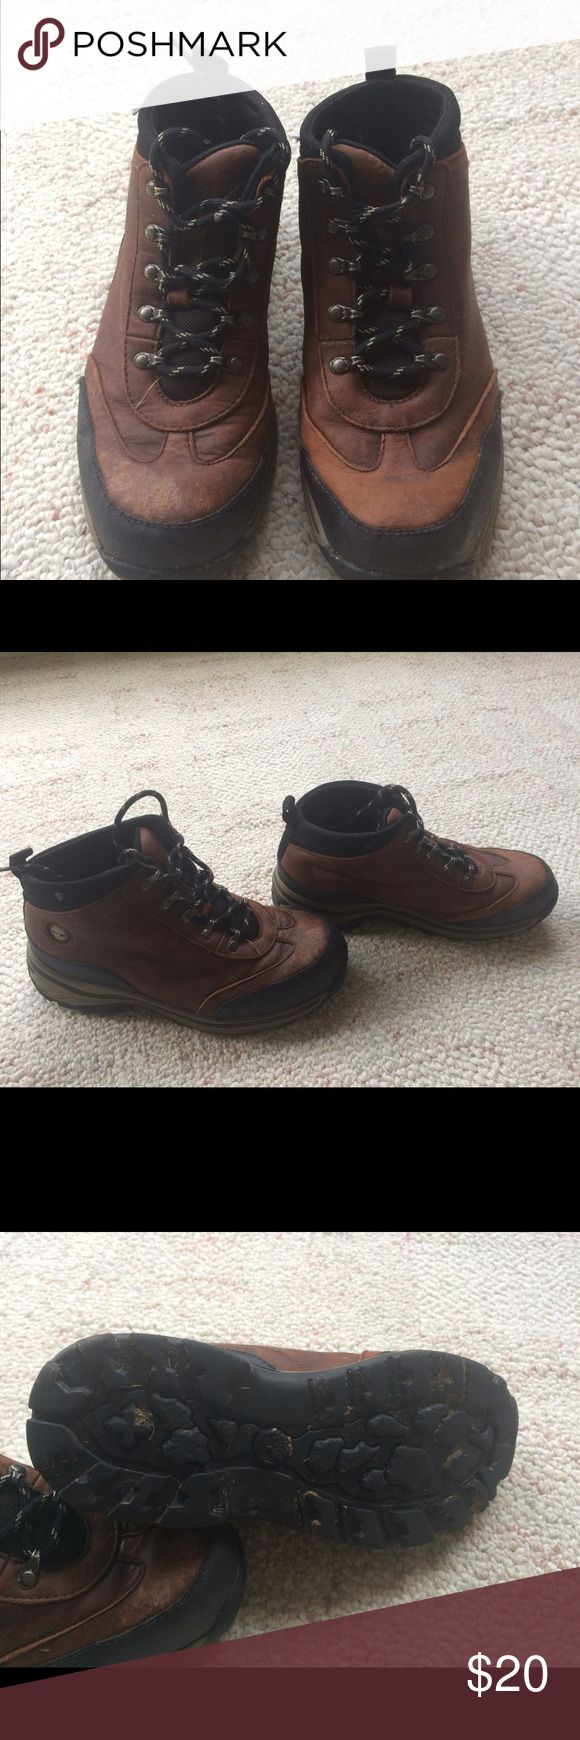 Boys Timberland Boots Very good condition. Only worn a few times. Timberland Shoes Boots